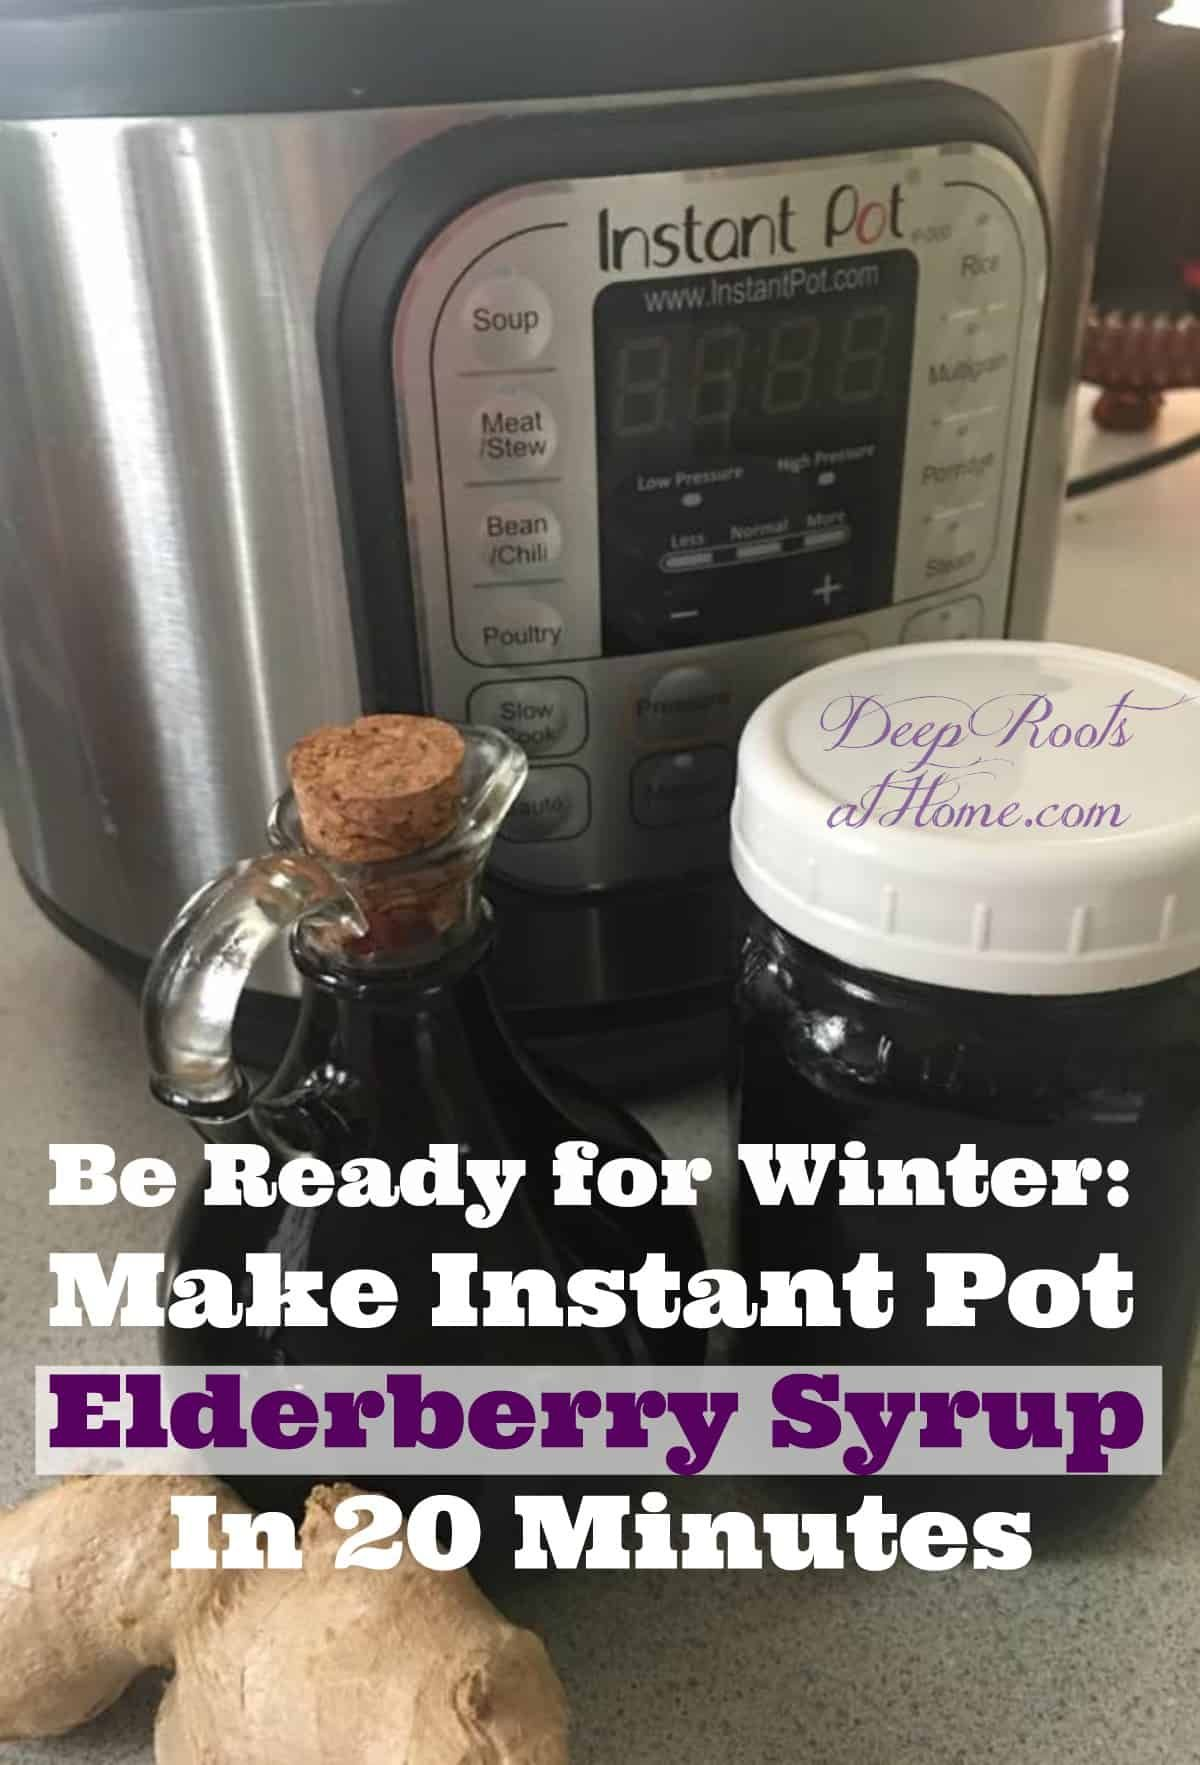 Be Ready for Winter: Instant Pot Elderberry Syrup In 20 Minutes